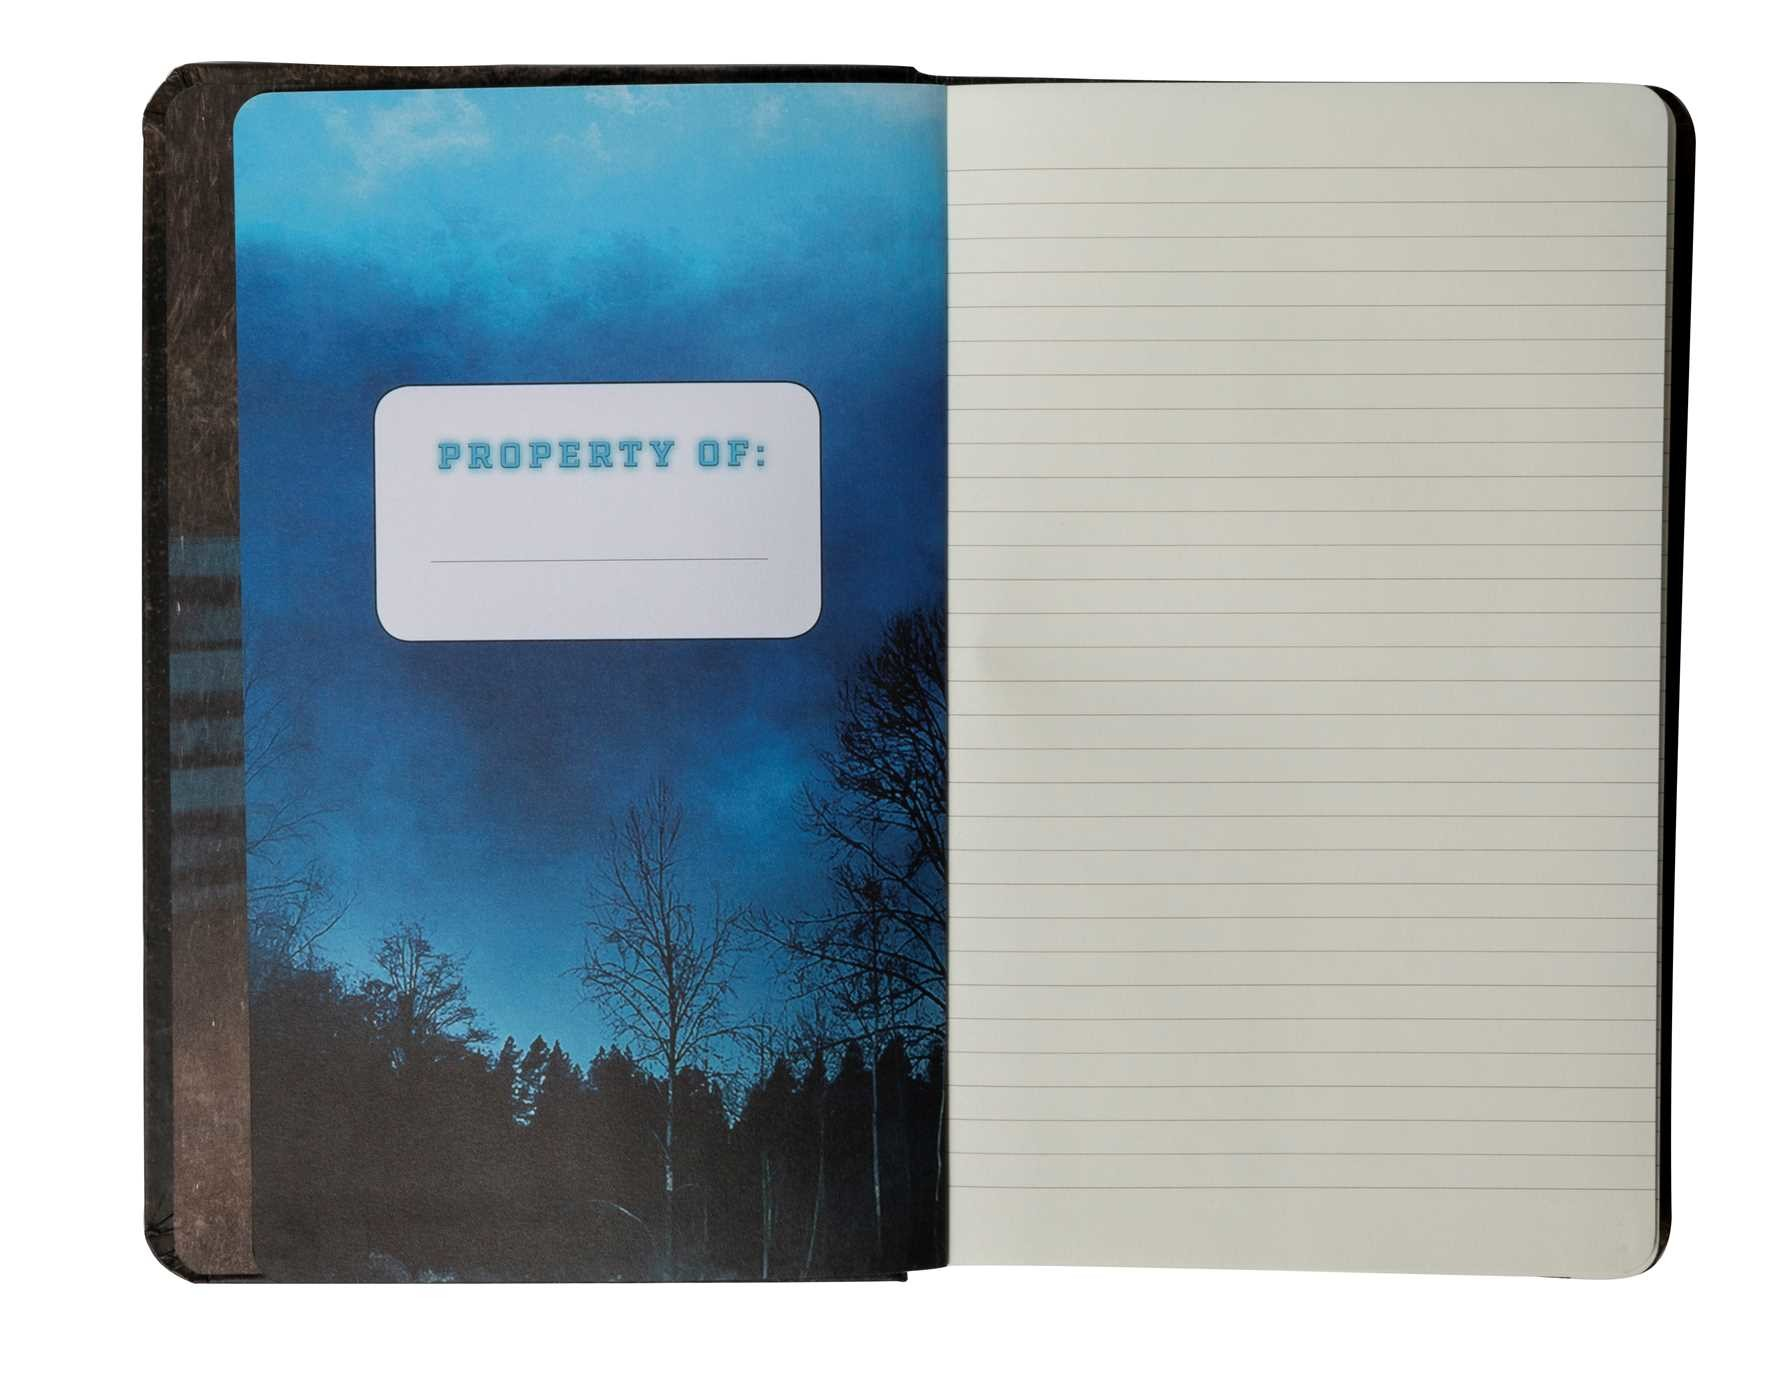 Riverdale hardcover ruled journal 9781683836049.in05